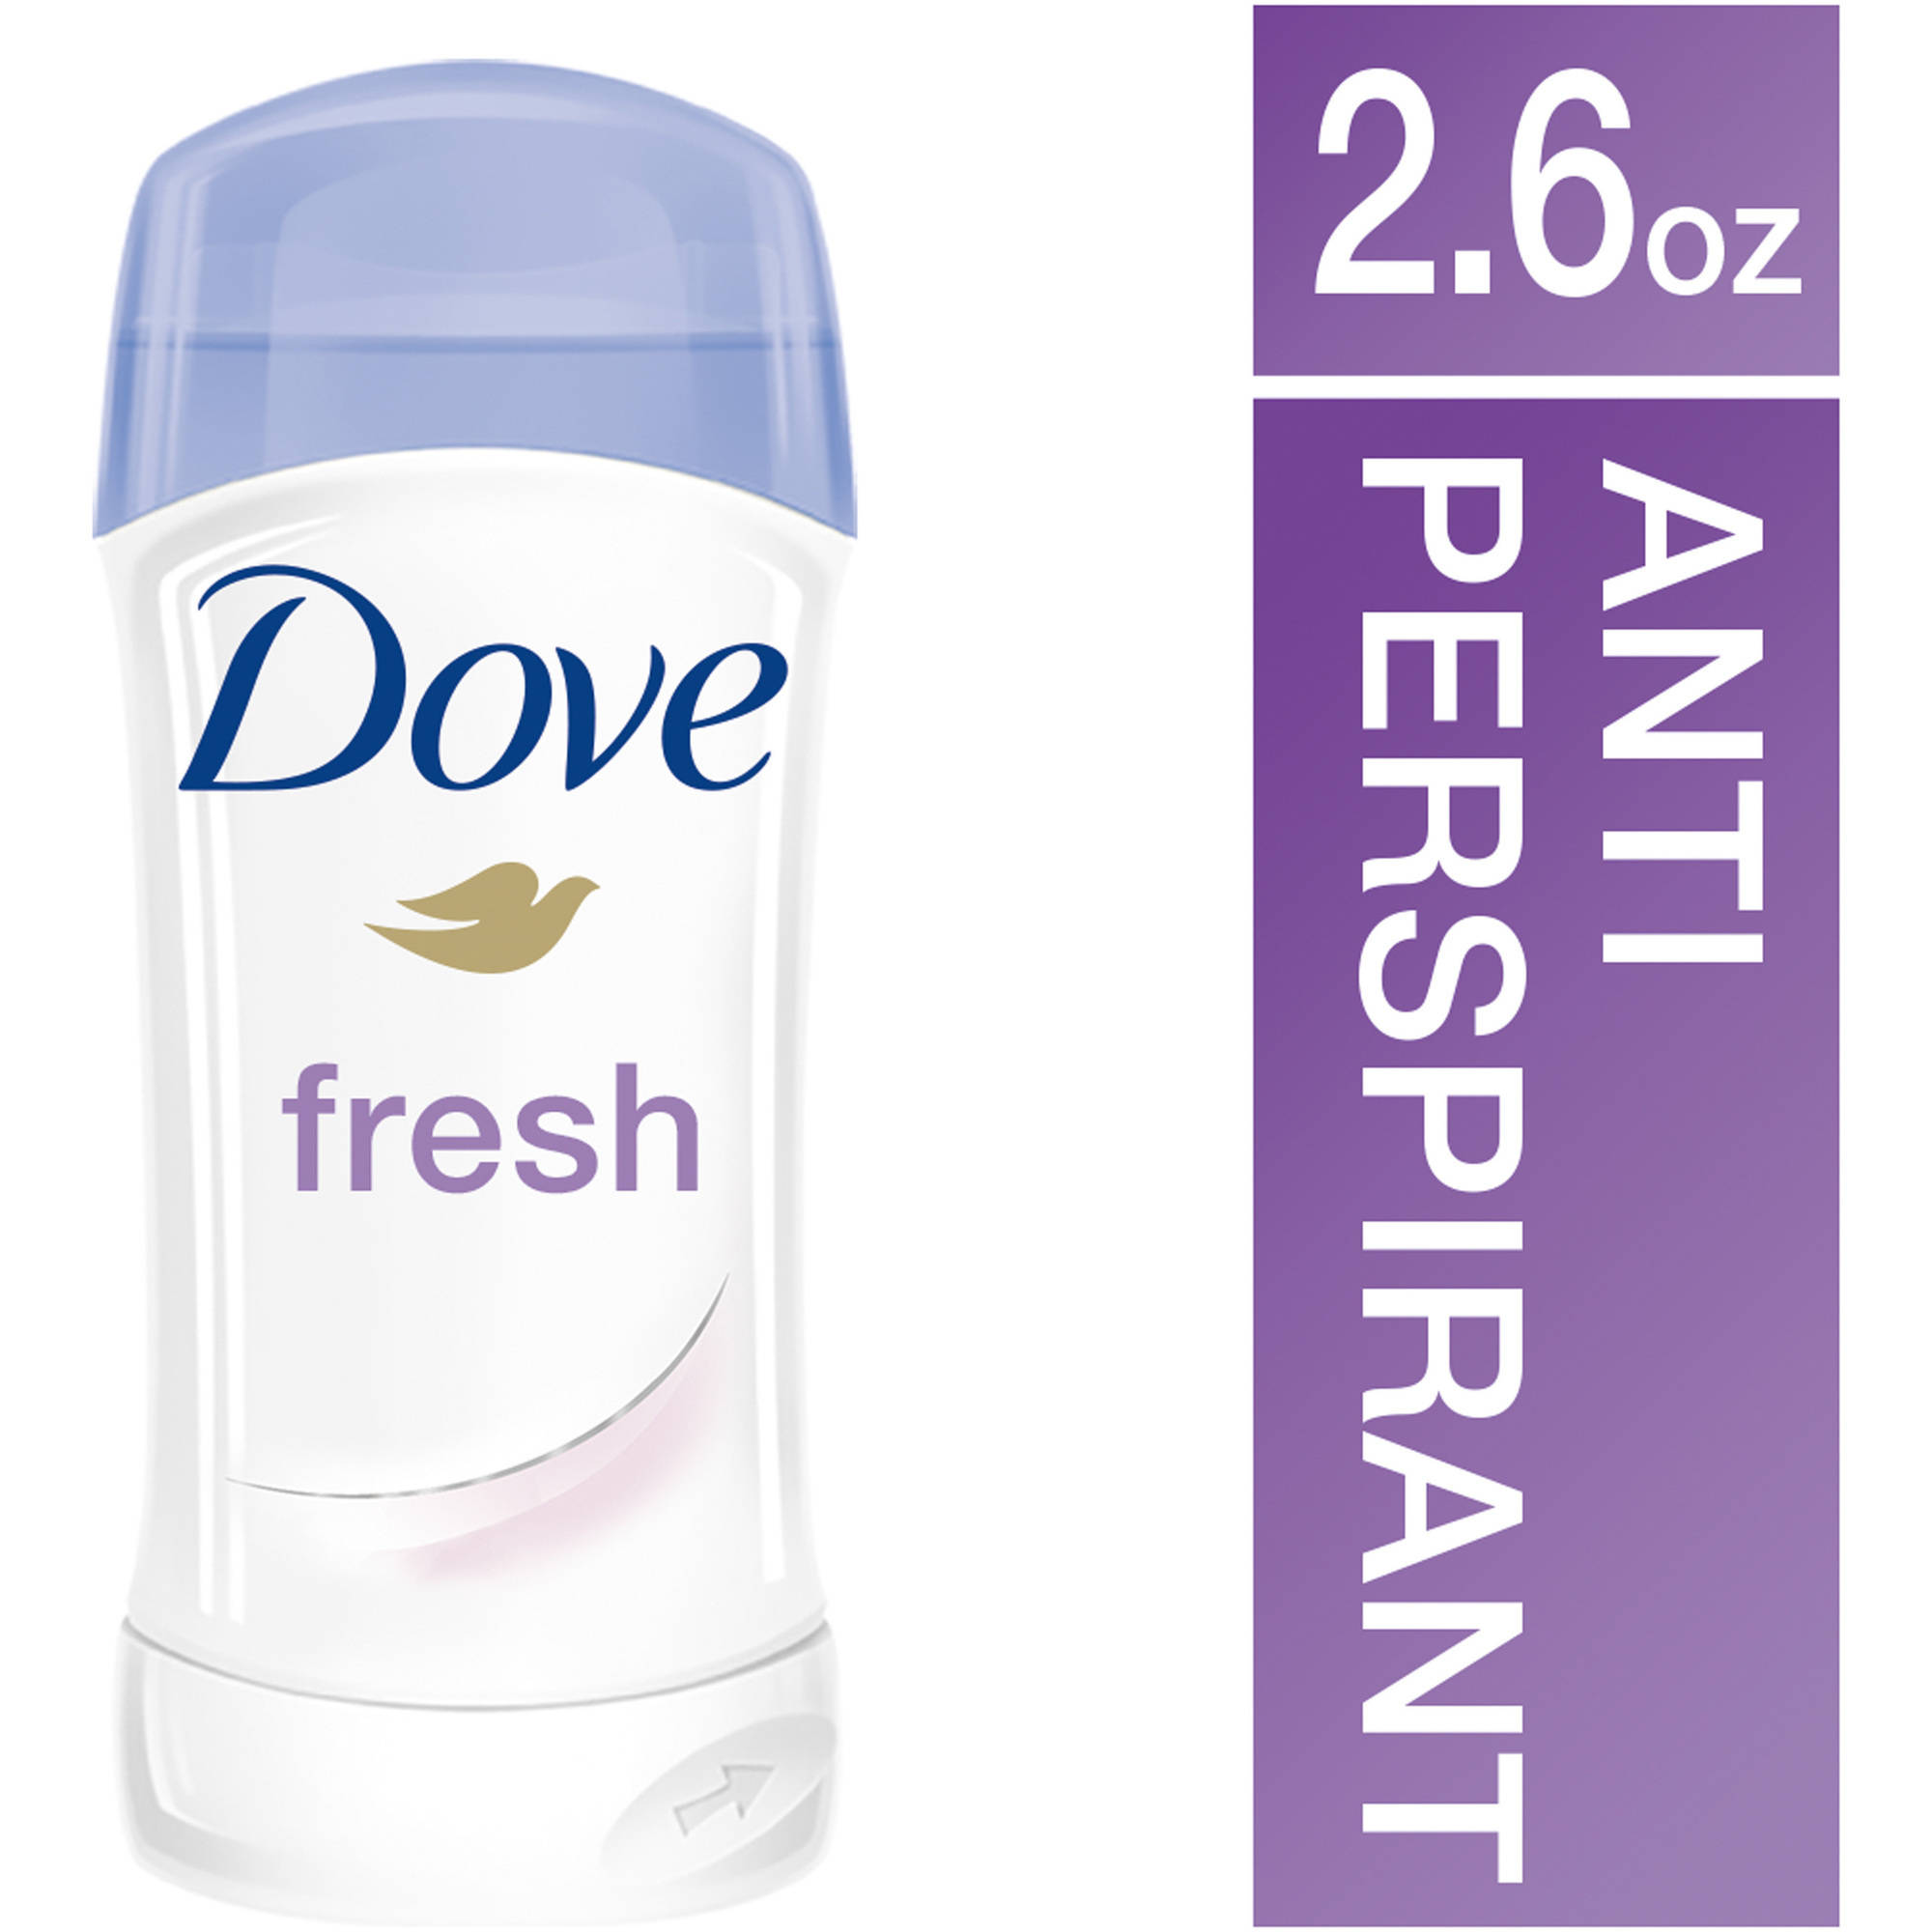 Dove Fresh Anti-Perspirant Deodorant, 2.6 oz